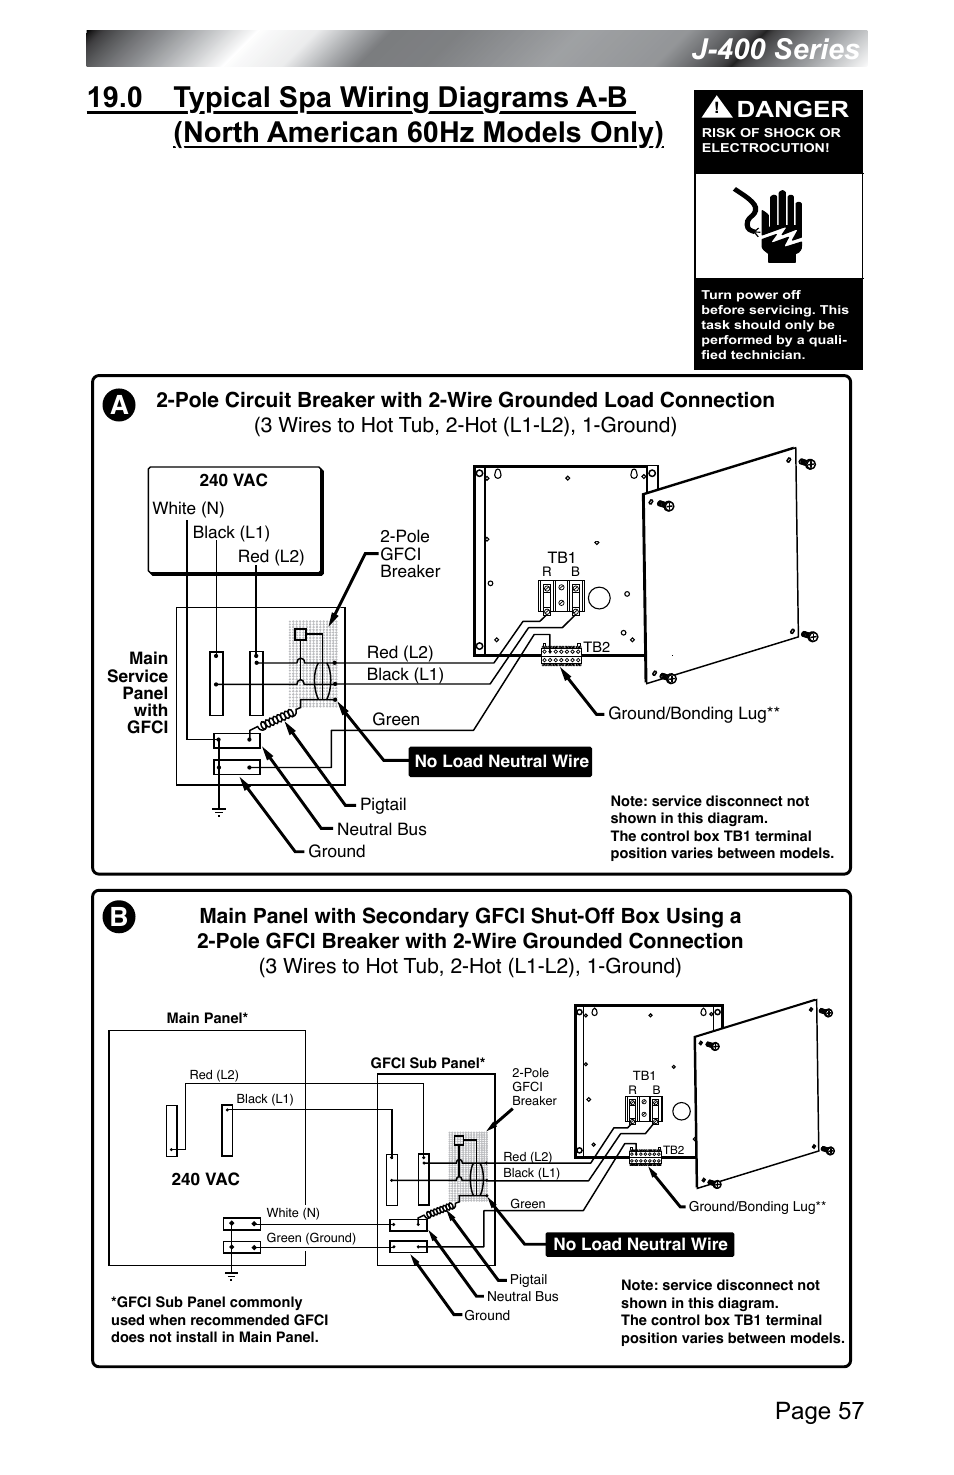 Models Only   J-400 Series  Page 57